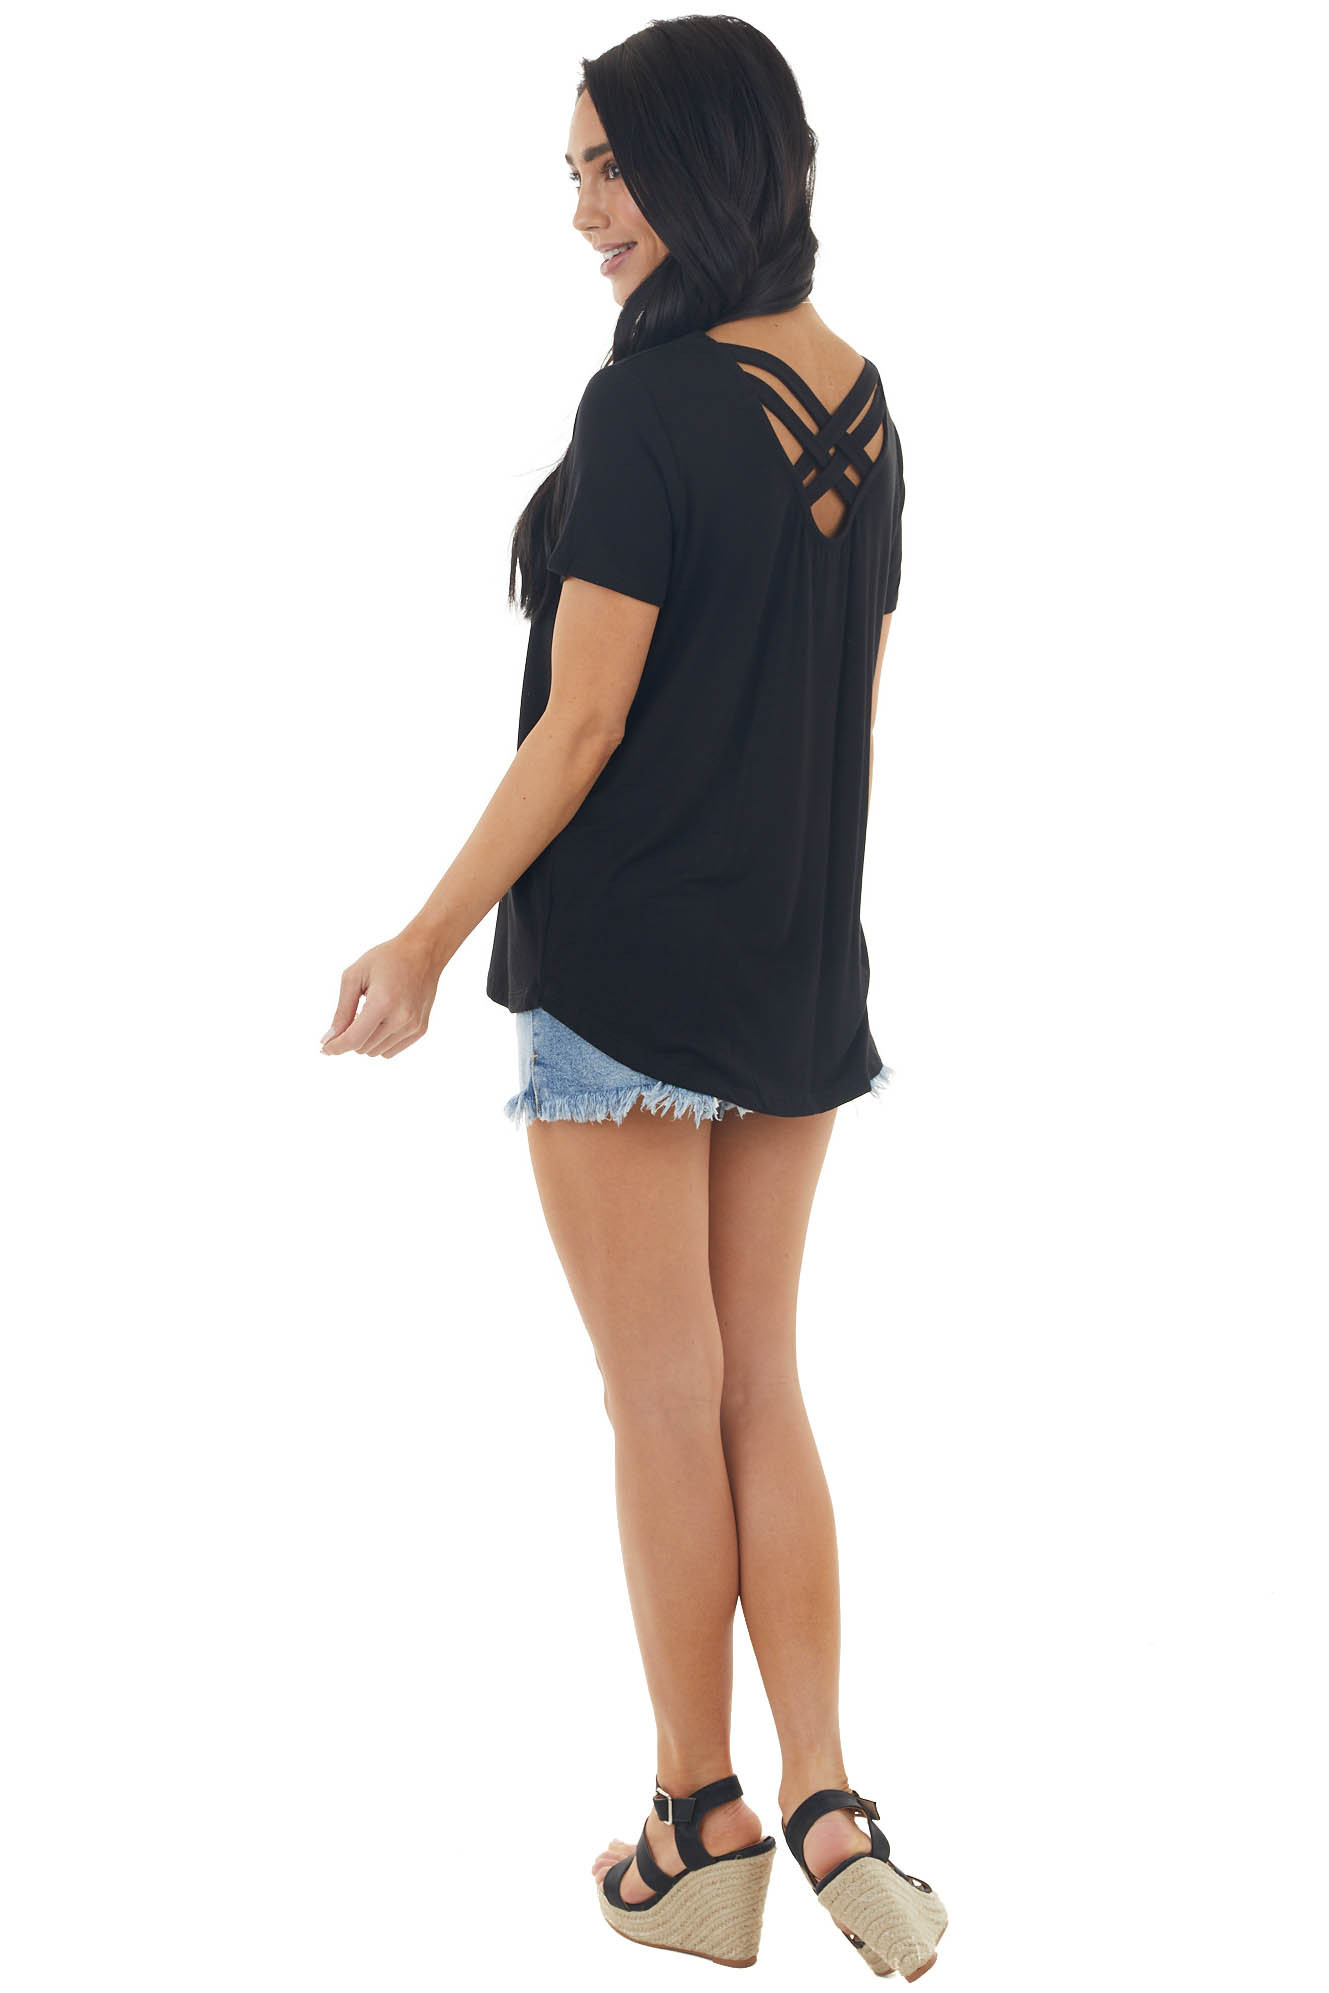 Black Short Sleeve Knit Top with Caged Back Detail